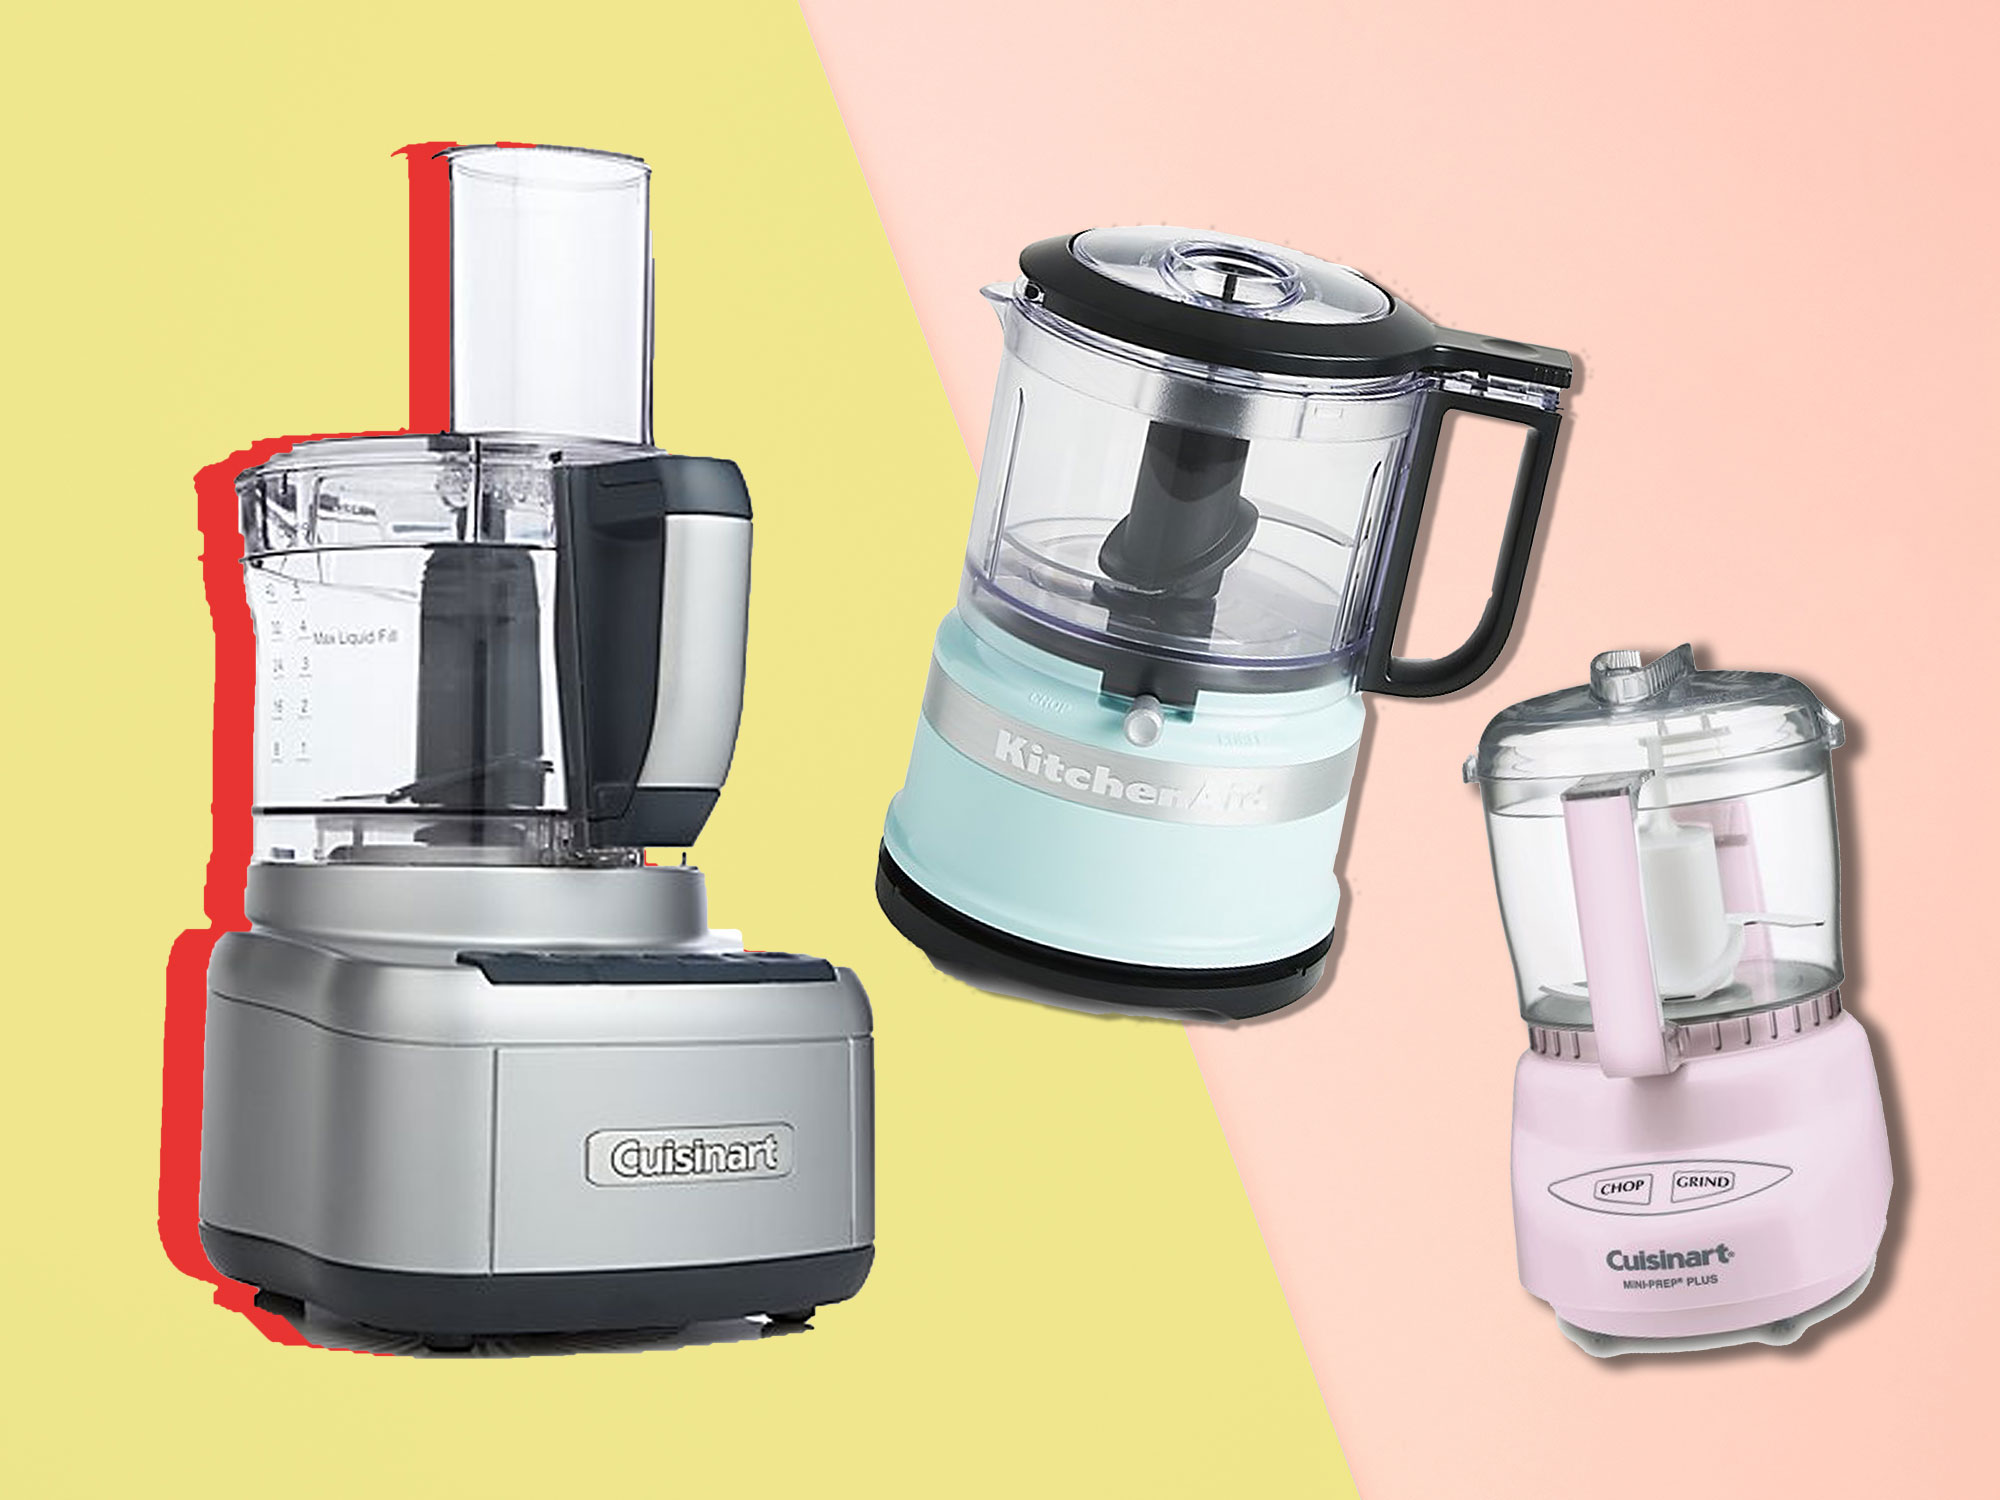 This Is the Kitchen Appliance to Buy in January, According to Experts